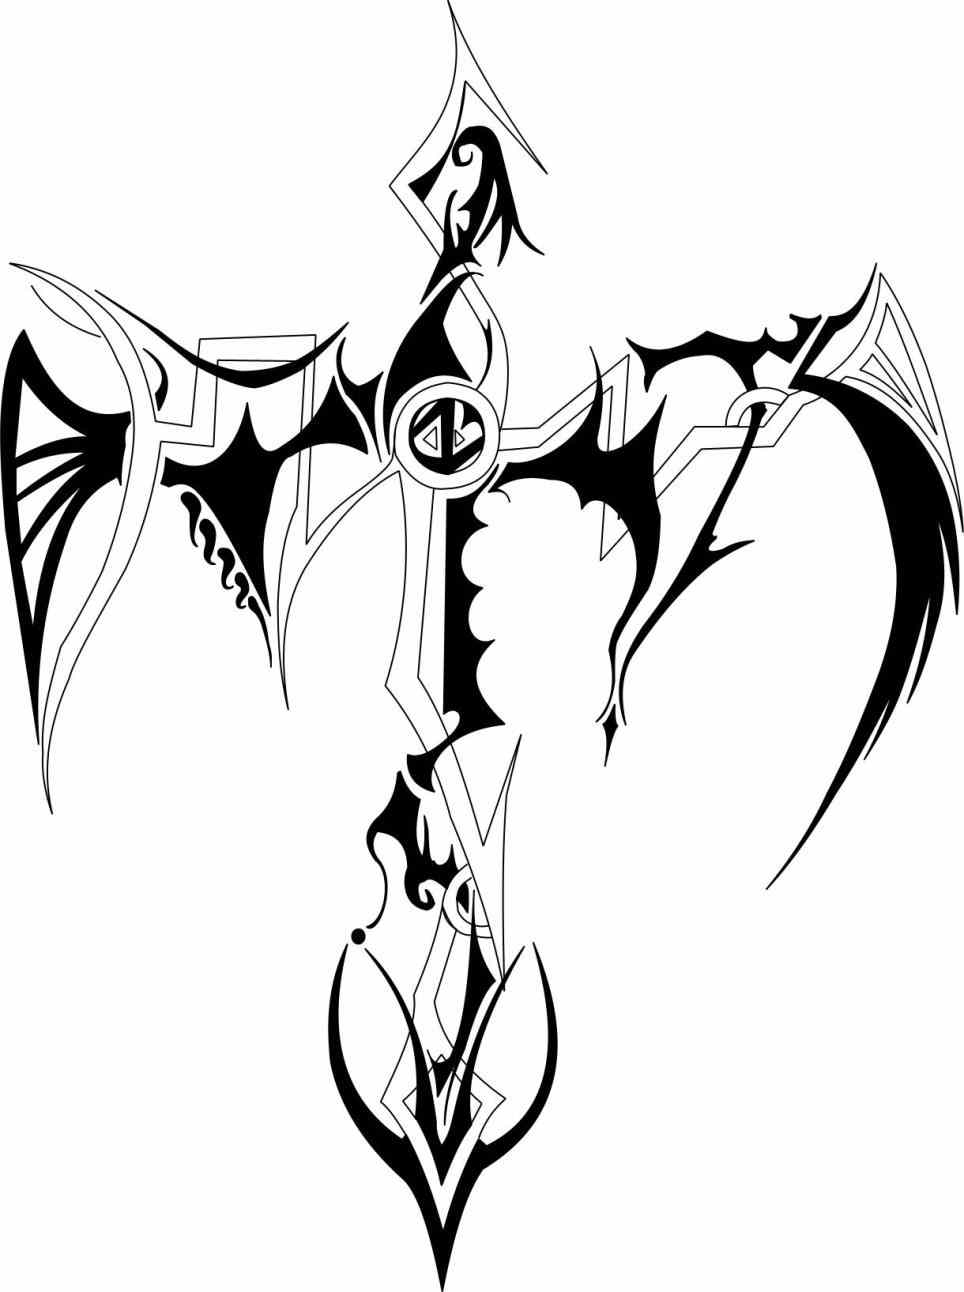 964x1292 Cross And Banner Tattoo Ideas